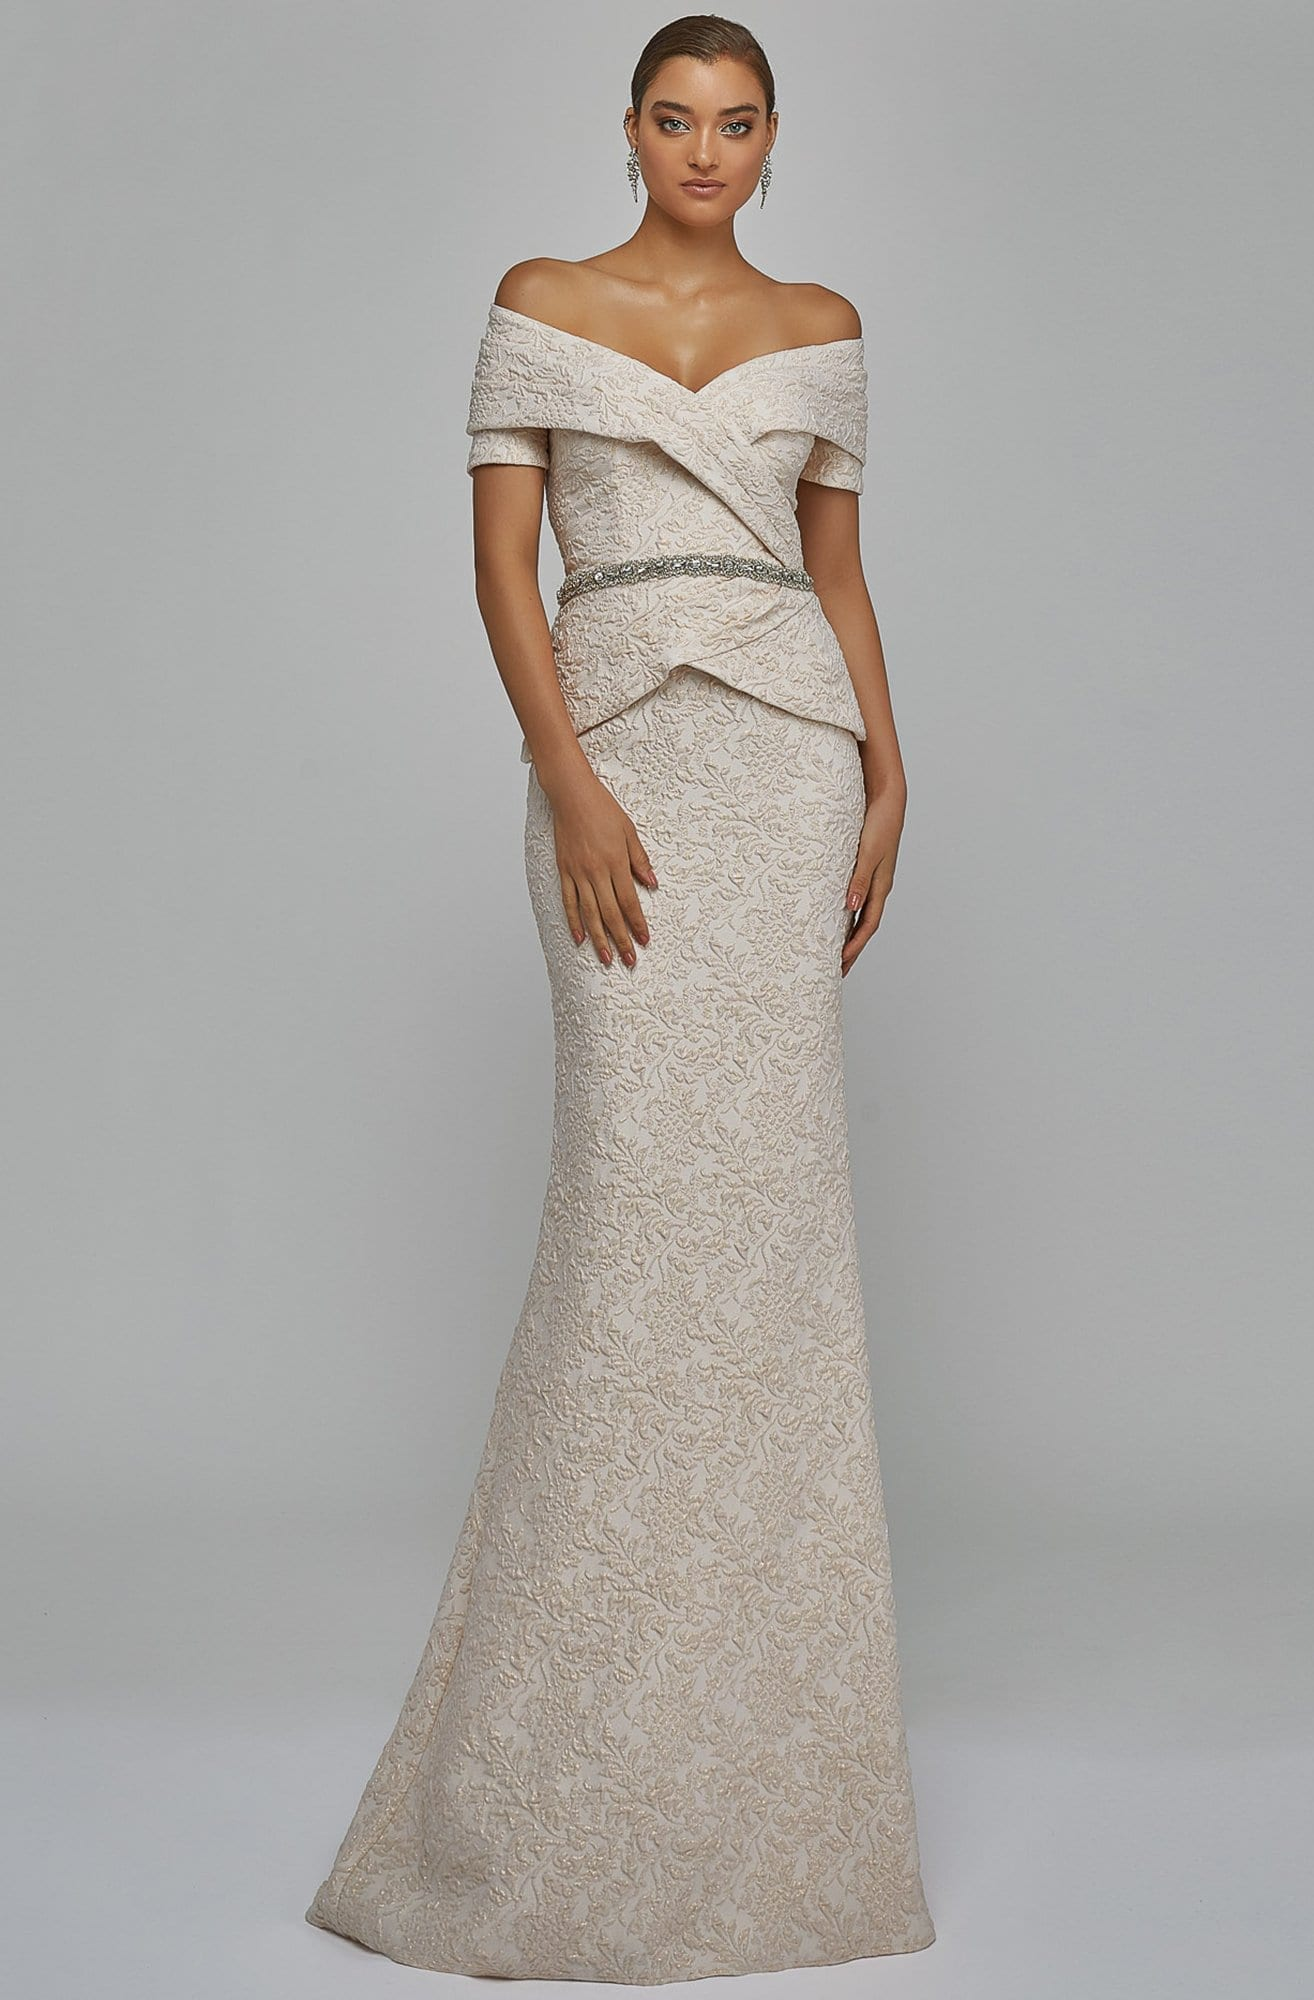 TERANI COUTURE - 1921M0727 Off Shoulder V Neck Beaded Belt Sheath Gown